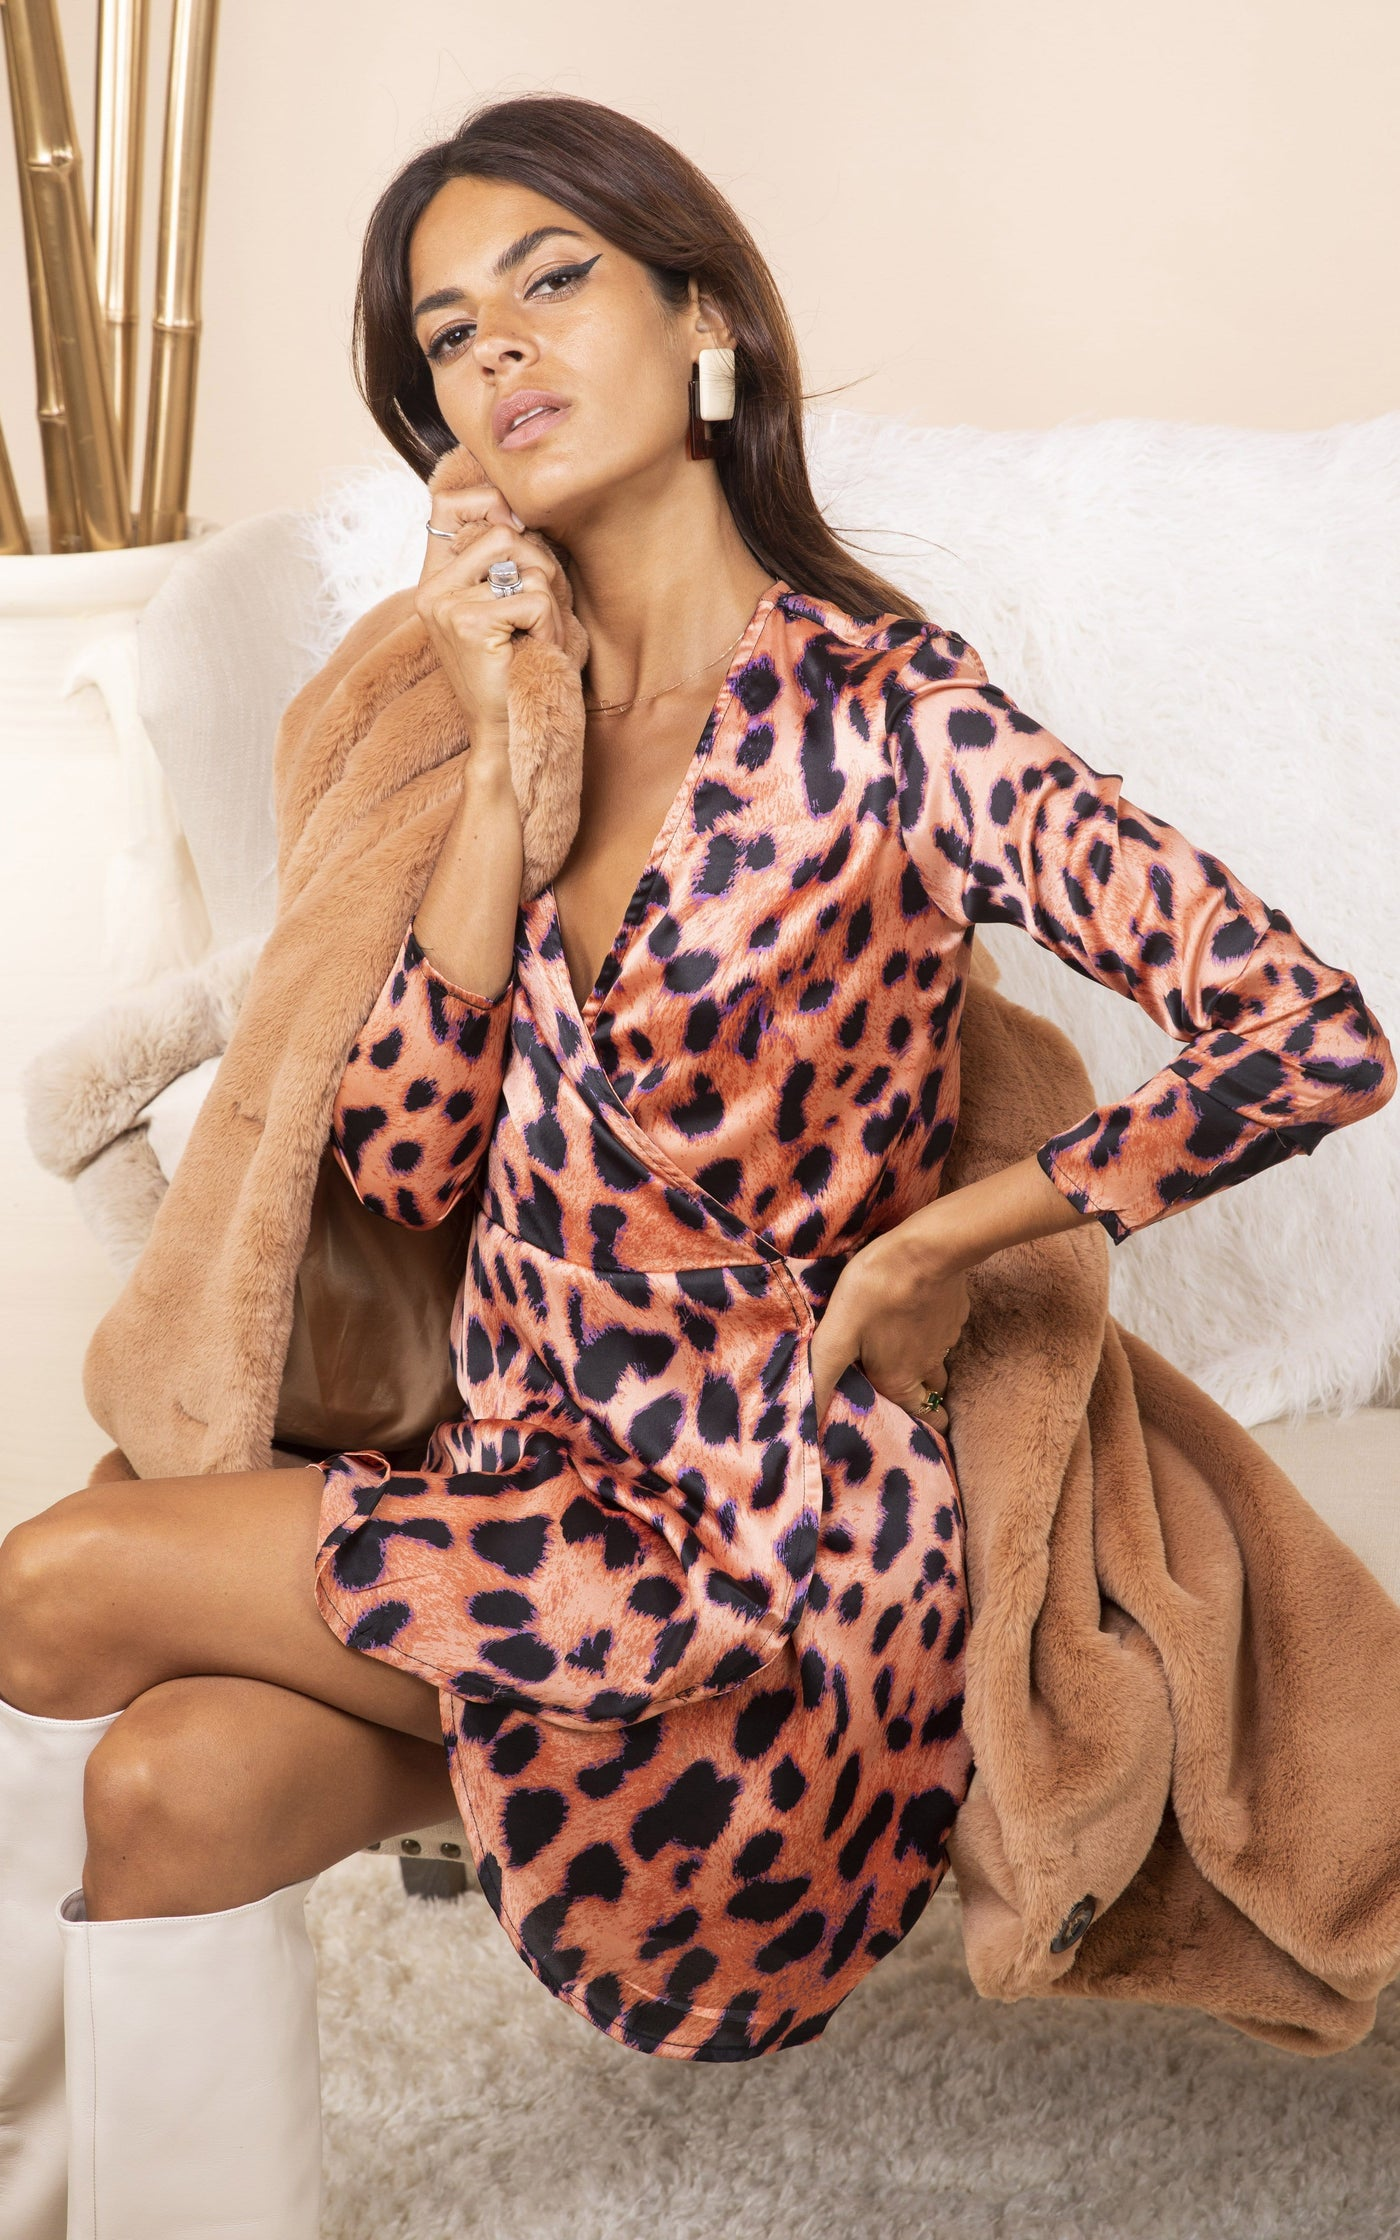 Dancing Leopard model sits down wearing tan coat and Marley Mini Dress in leopard print